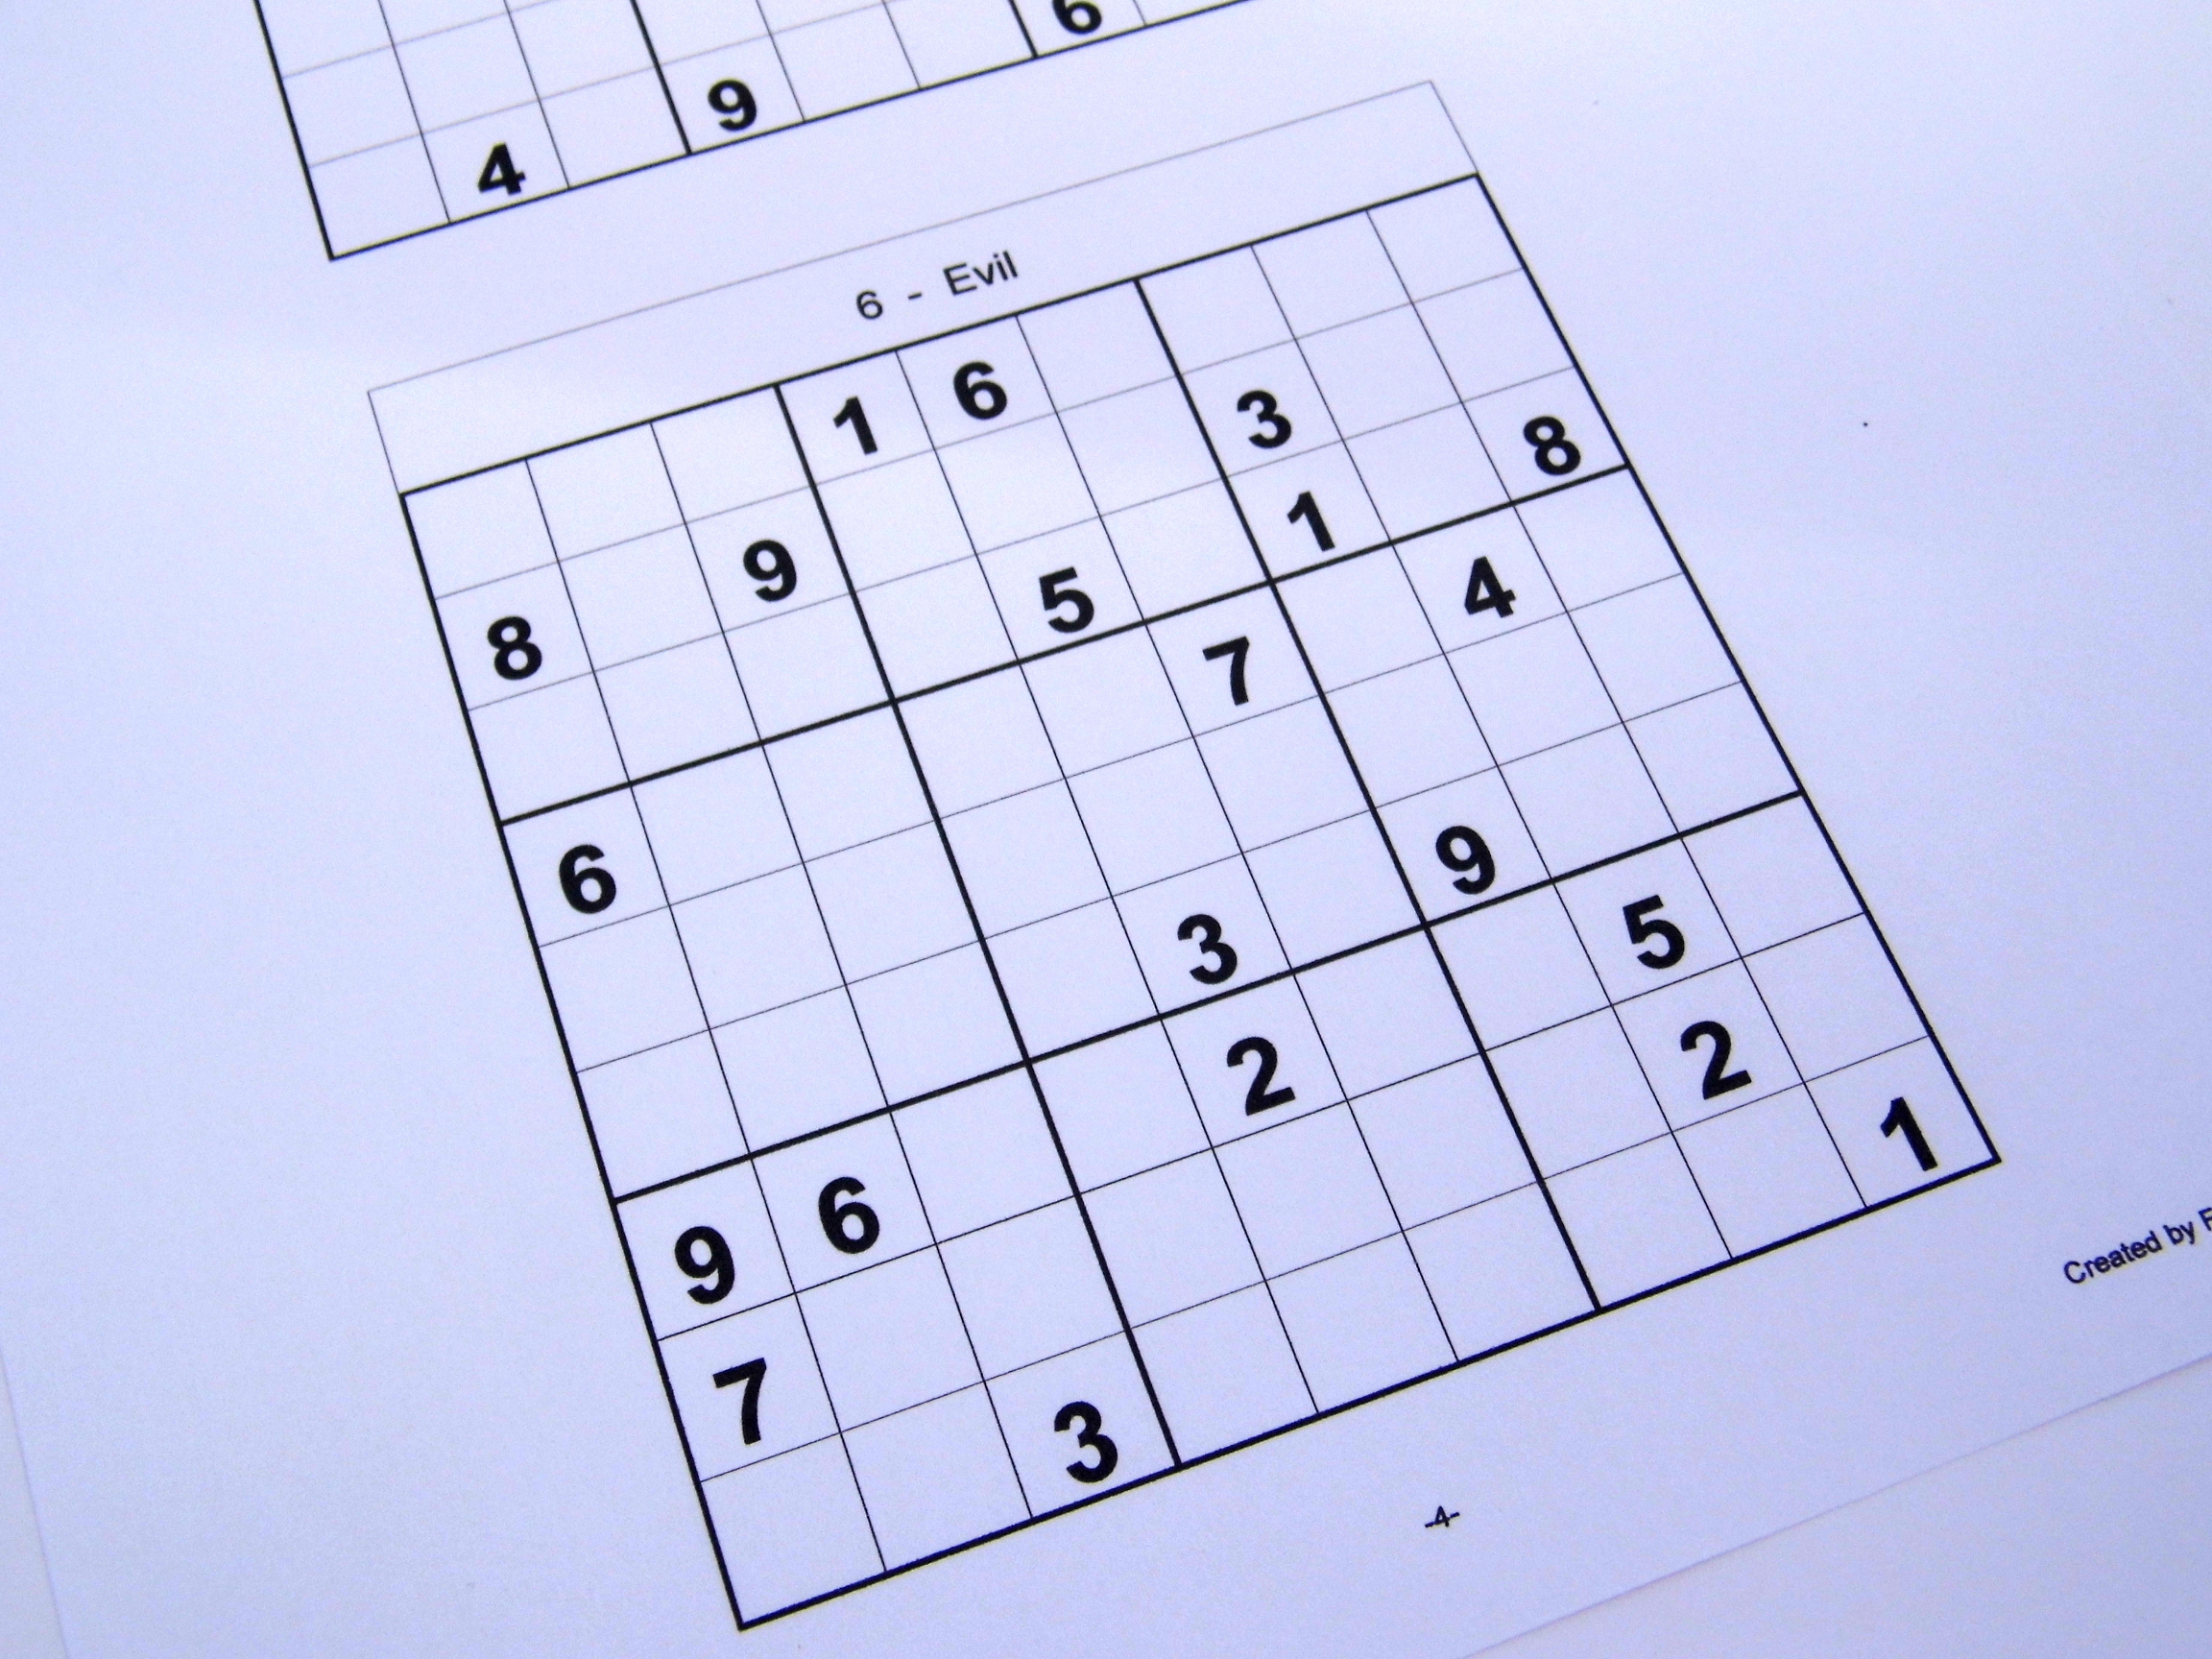 Hard Printable Sudoku Puzzles 6 Per Page – Book 1 – Free Sudoku Puzzles - Printable Sudoku Puzzles One Per Page